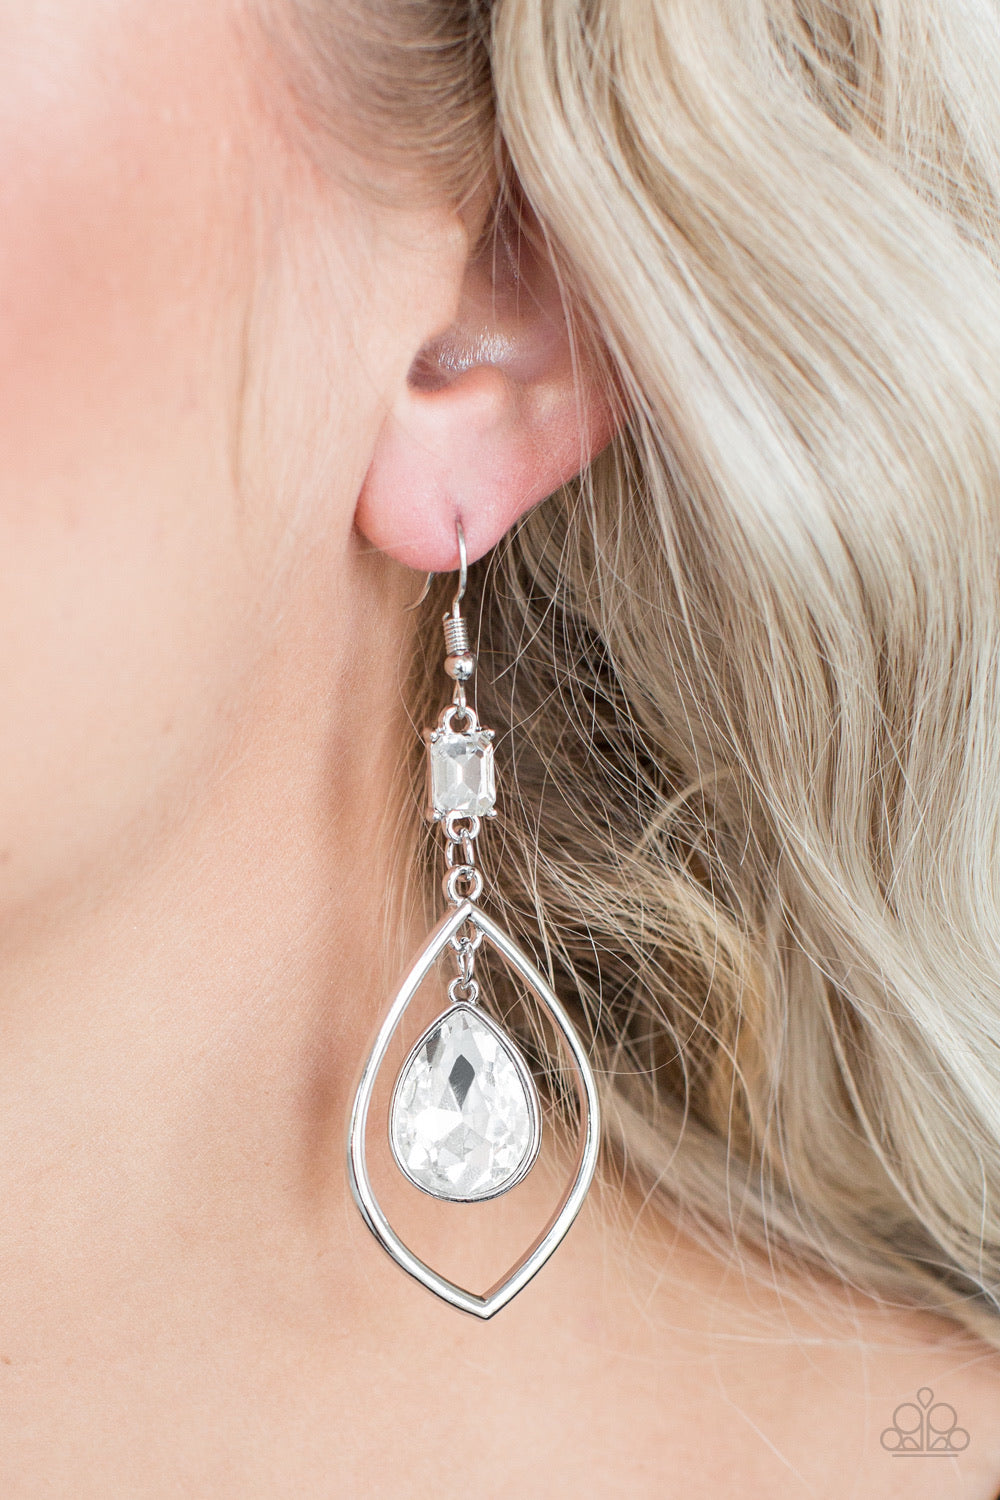 Paparazzi Jewelry Earrings Priceless - White